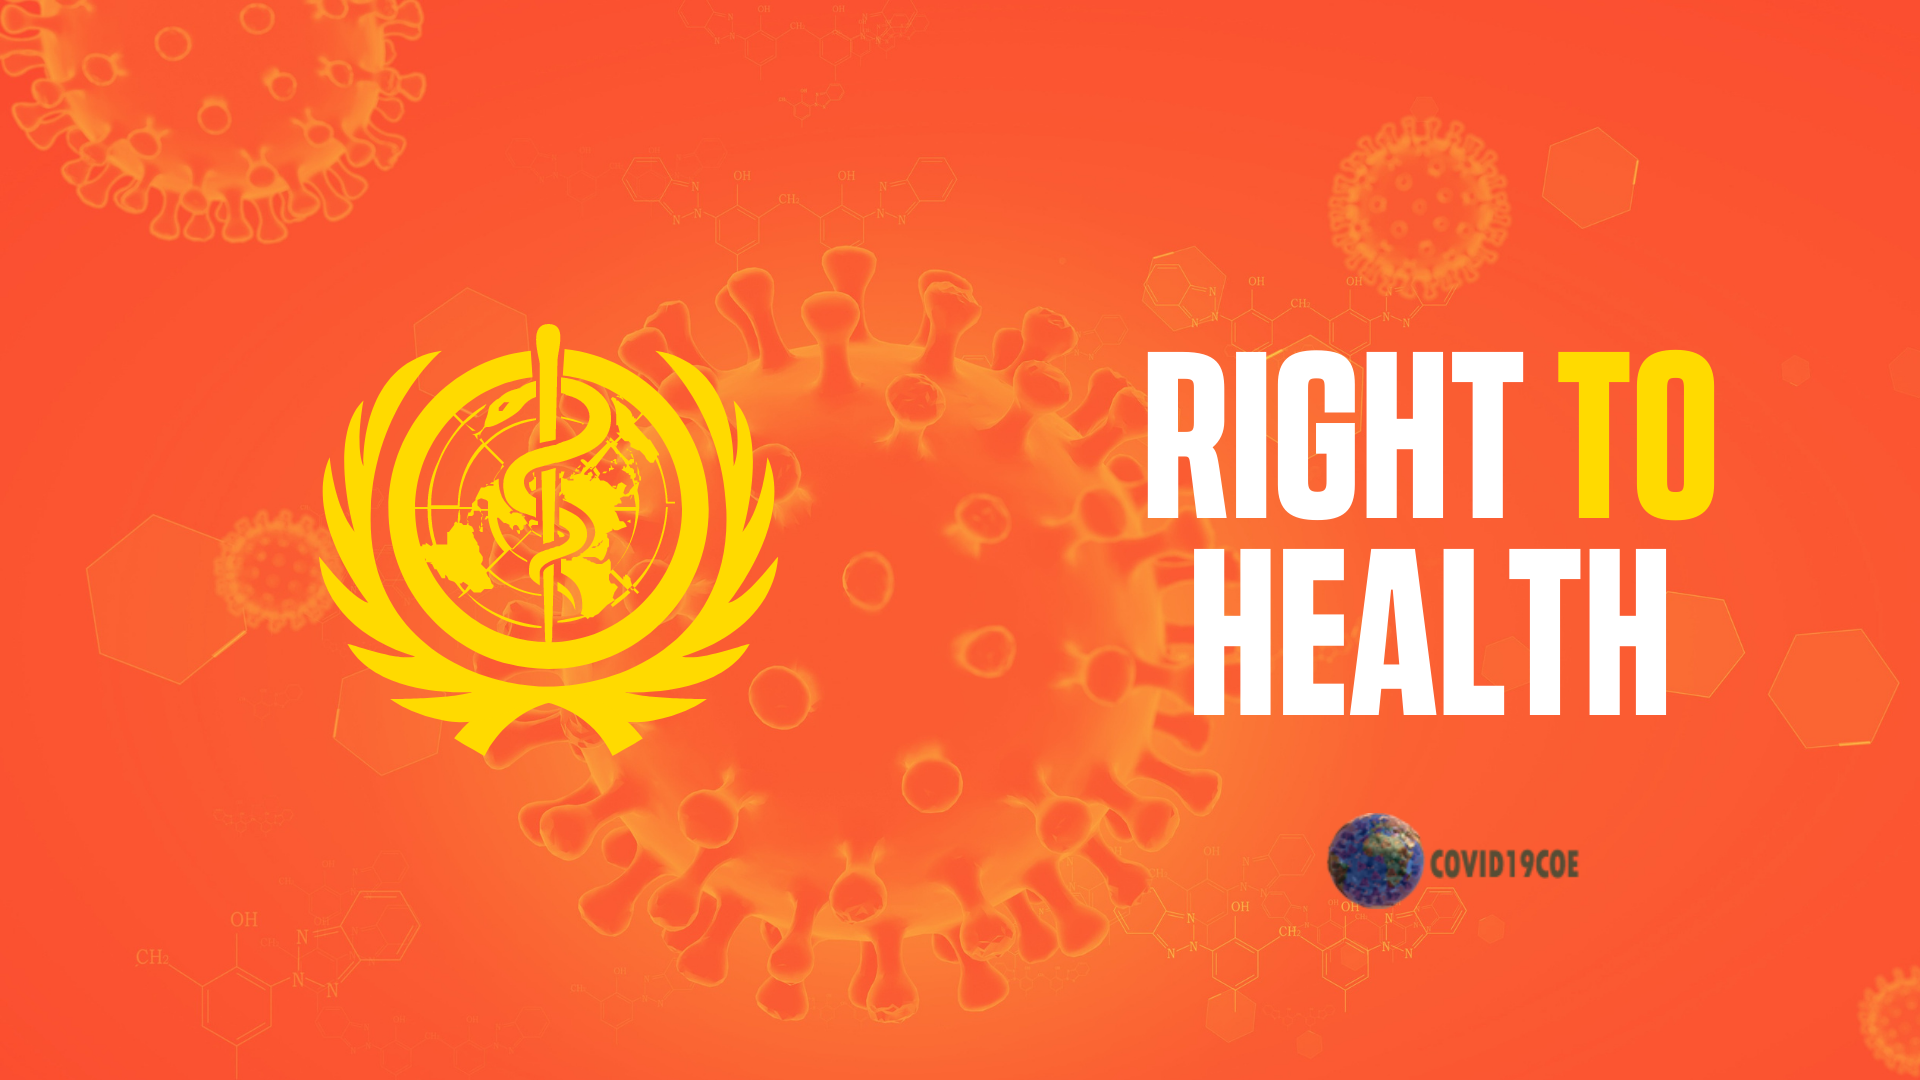 Global COVID19 Right to Health